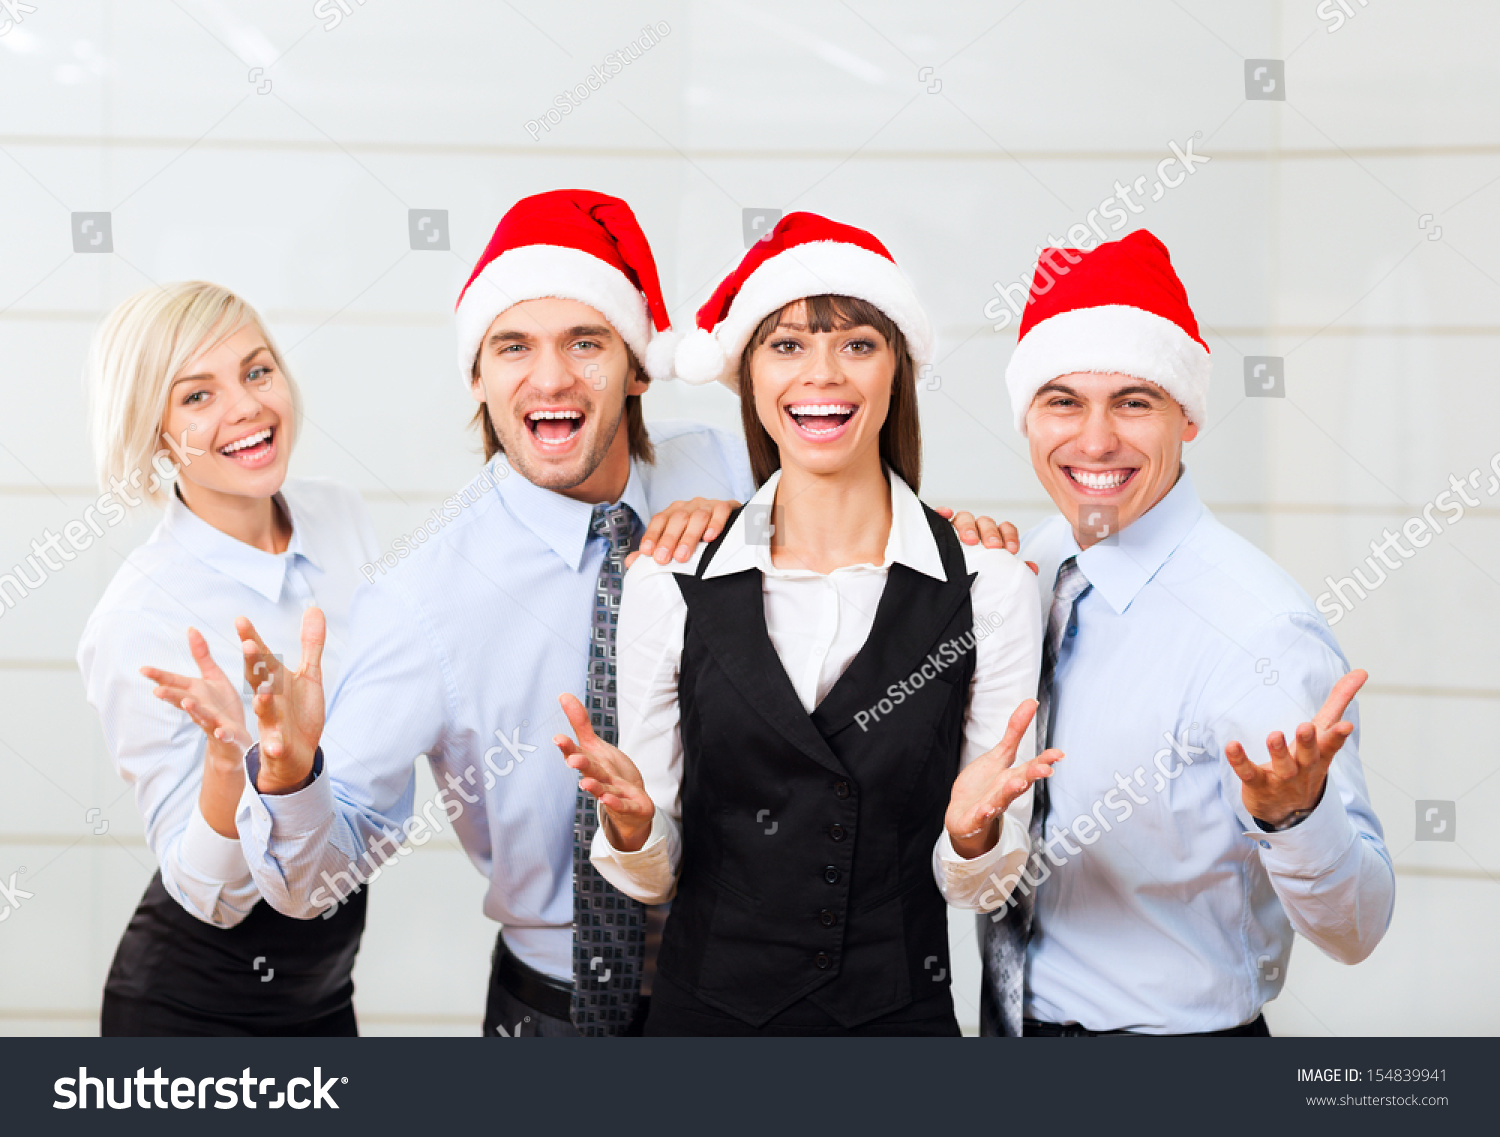 businesspeople office party celebrate new year stock photo businesspeople office party celebrate new year christmas holiday group of business people team wear